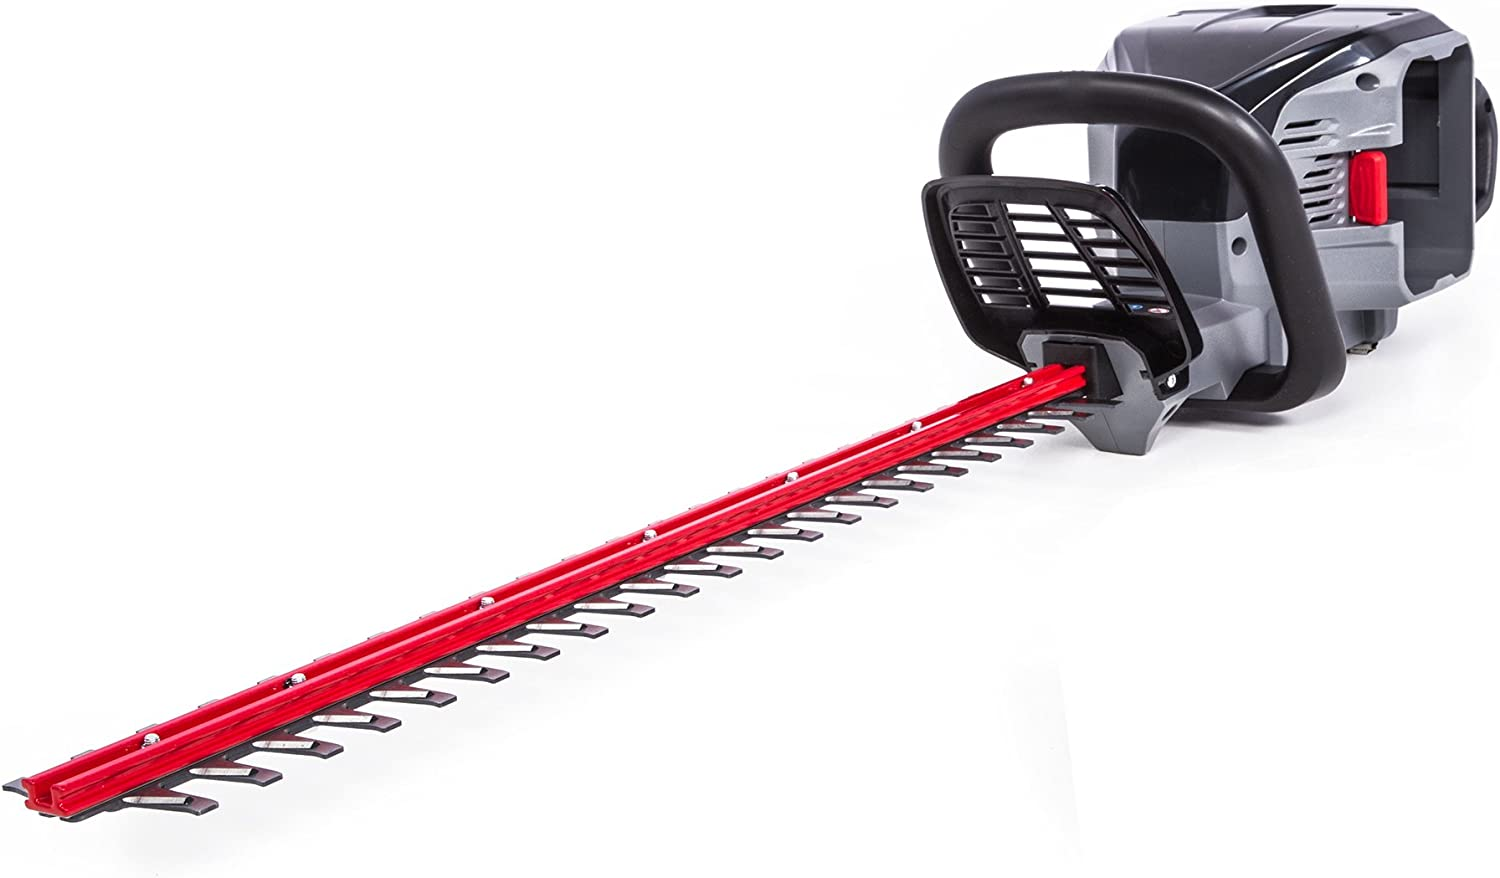 POWERWORKS 60V 24-inch Brushed Hedge Trimmer, Battery Not Included HT60B01PW